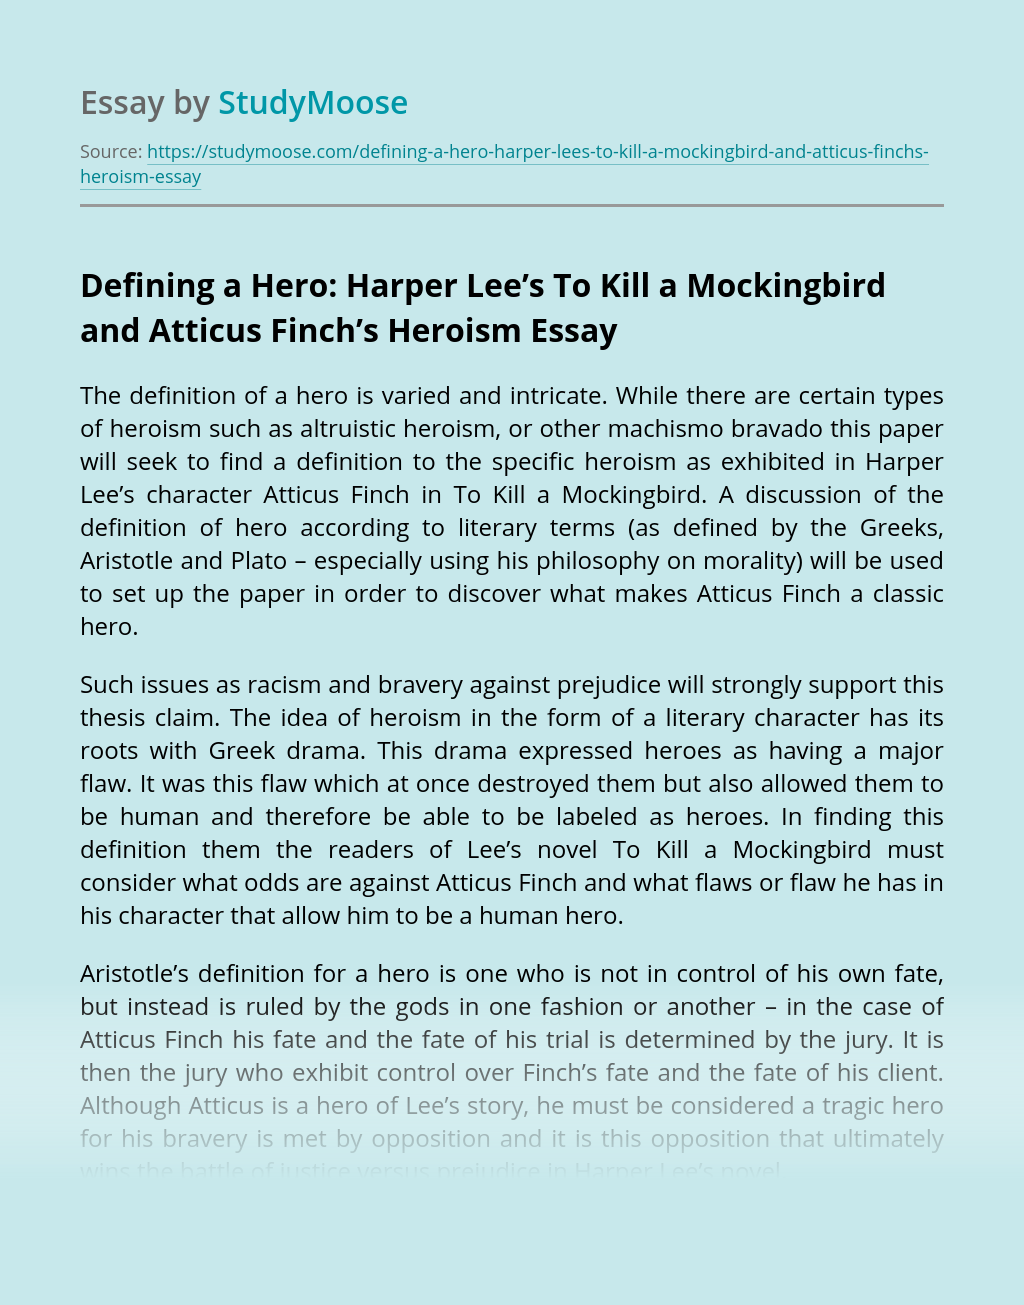 Defining a Hero: Harper Lee's To Kill a Mockingbird and Atticus Finch's Heroism